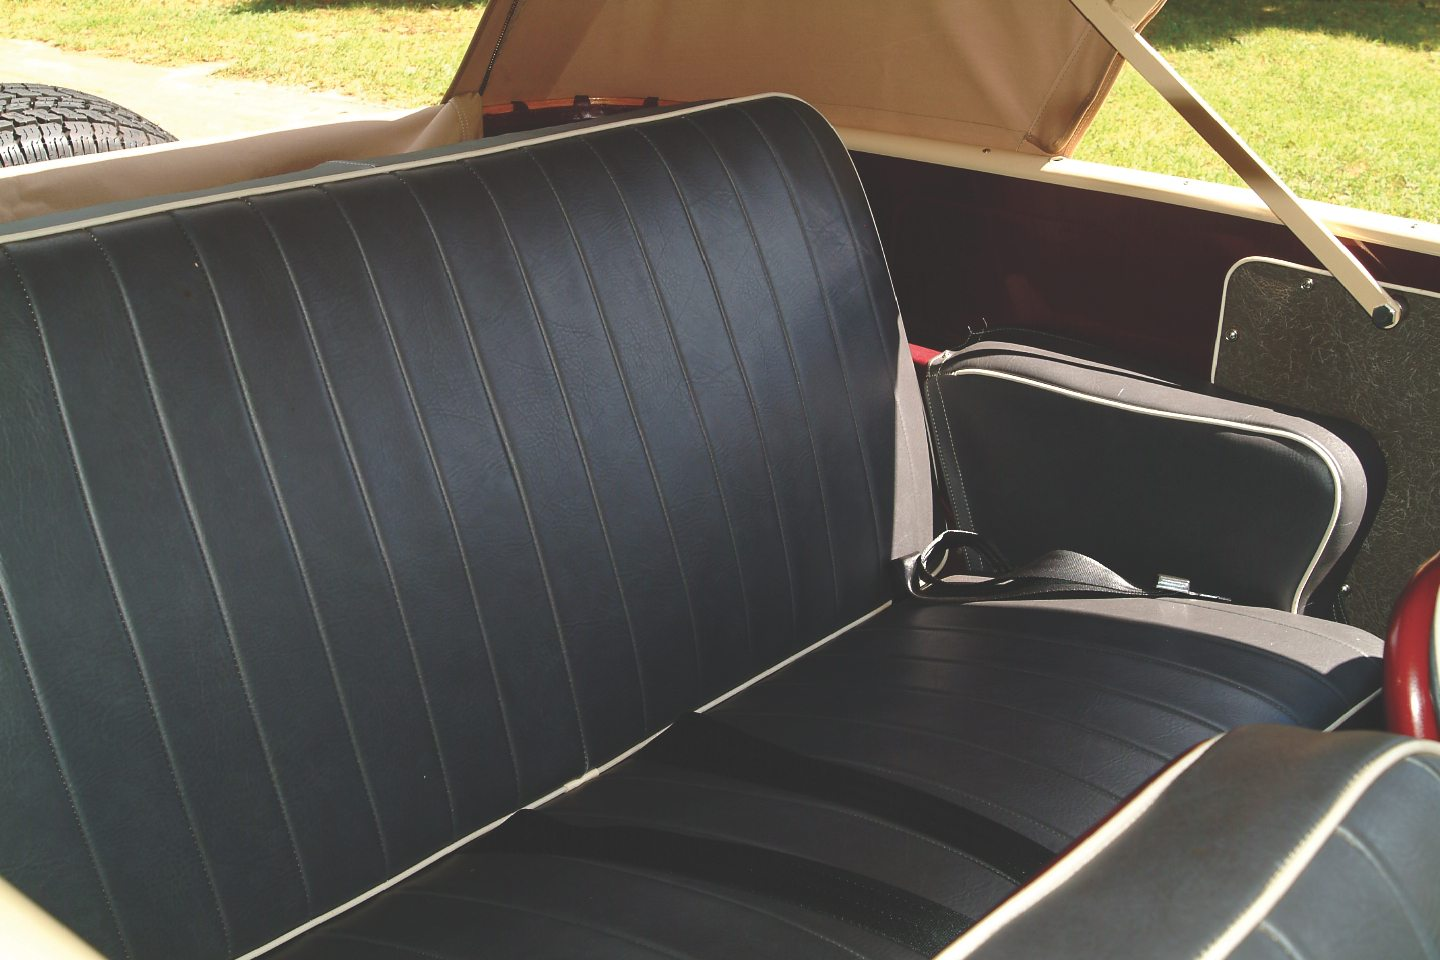 1949 Willys-Overland Jeepster Backseat